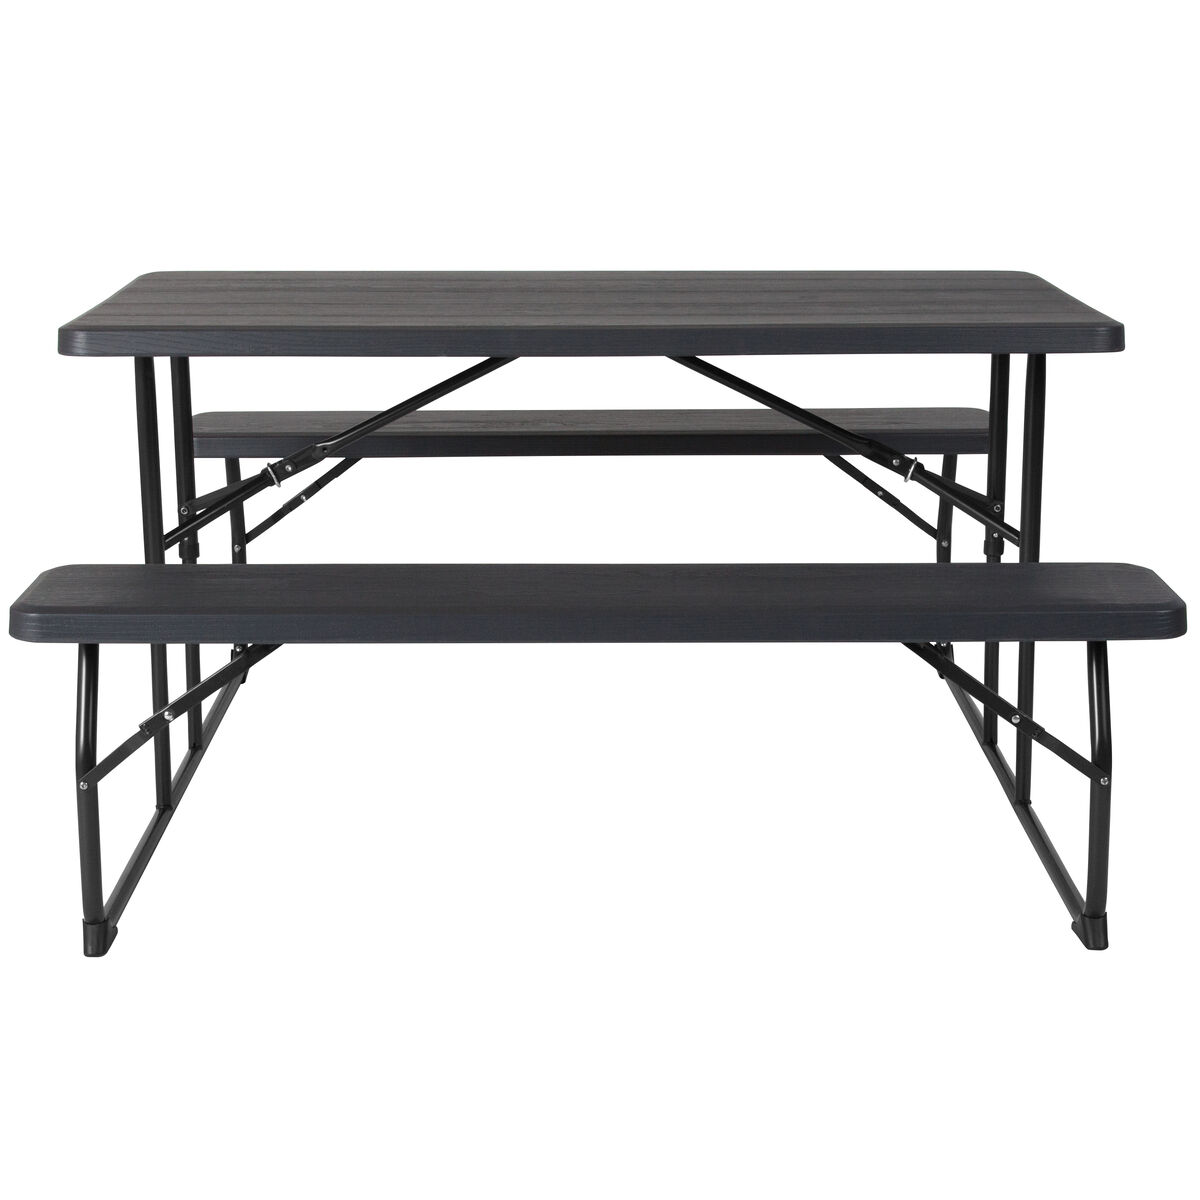 Remarkable Insta Fold Charcoal Wood Grain Folding Picnic Table And Benches Ibusinesslaw Wood Chair Design Ideas Ibusinesslaworg